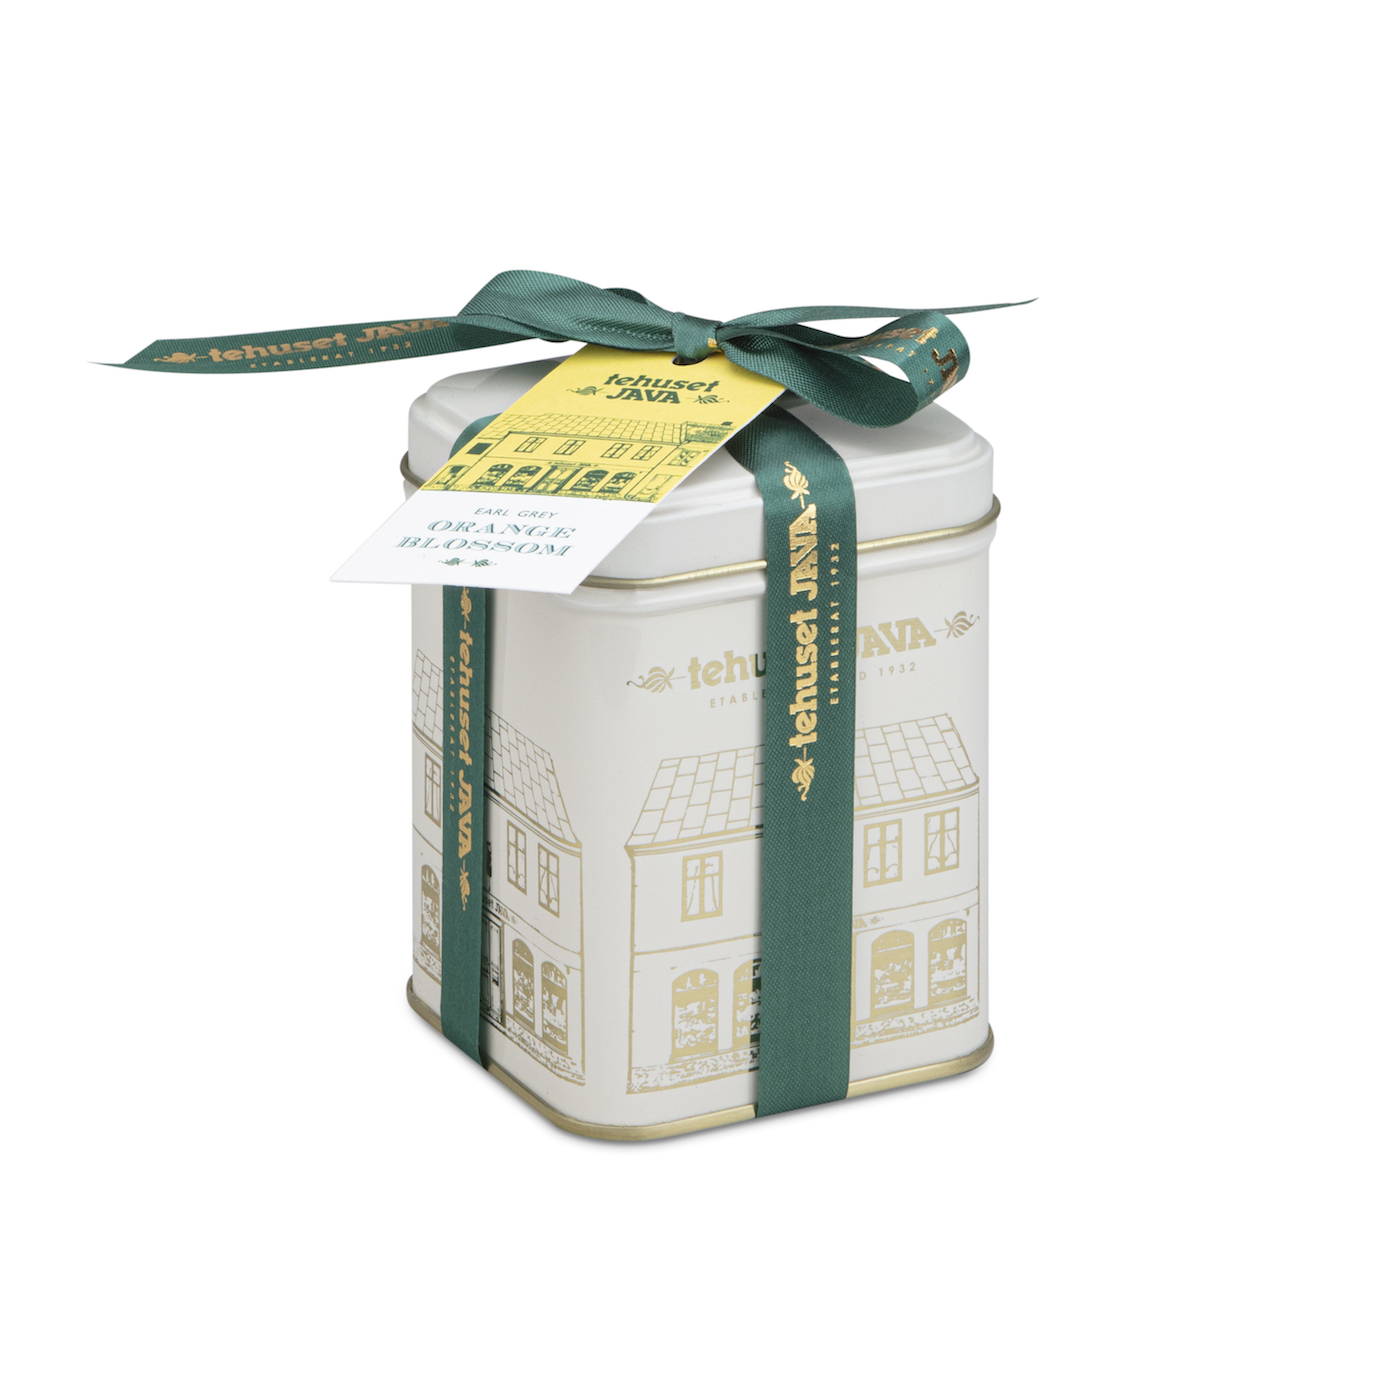 Earl Grey Orange Blossom i plåtburk 100g